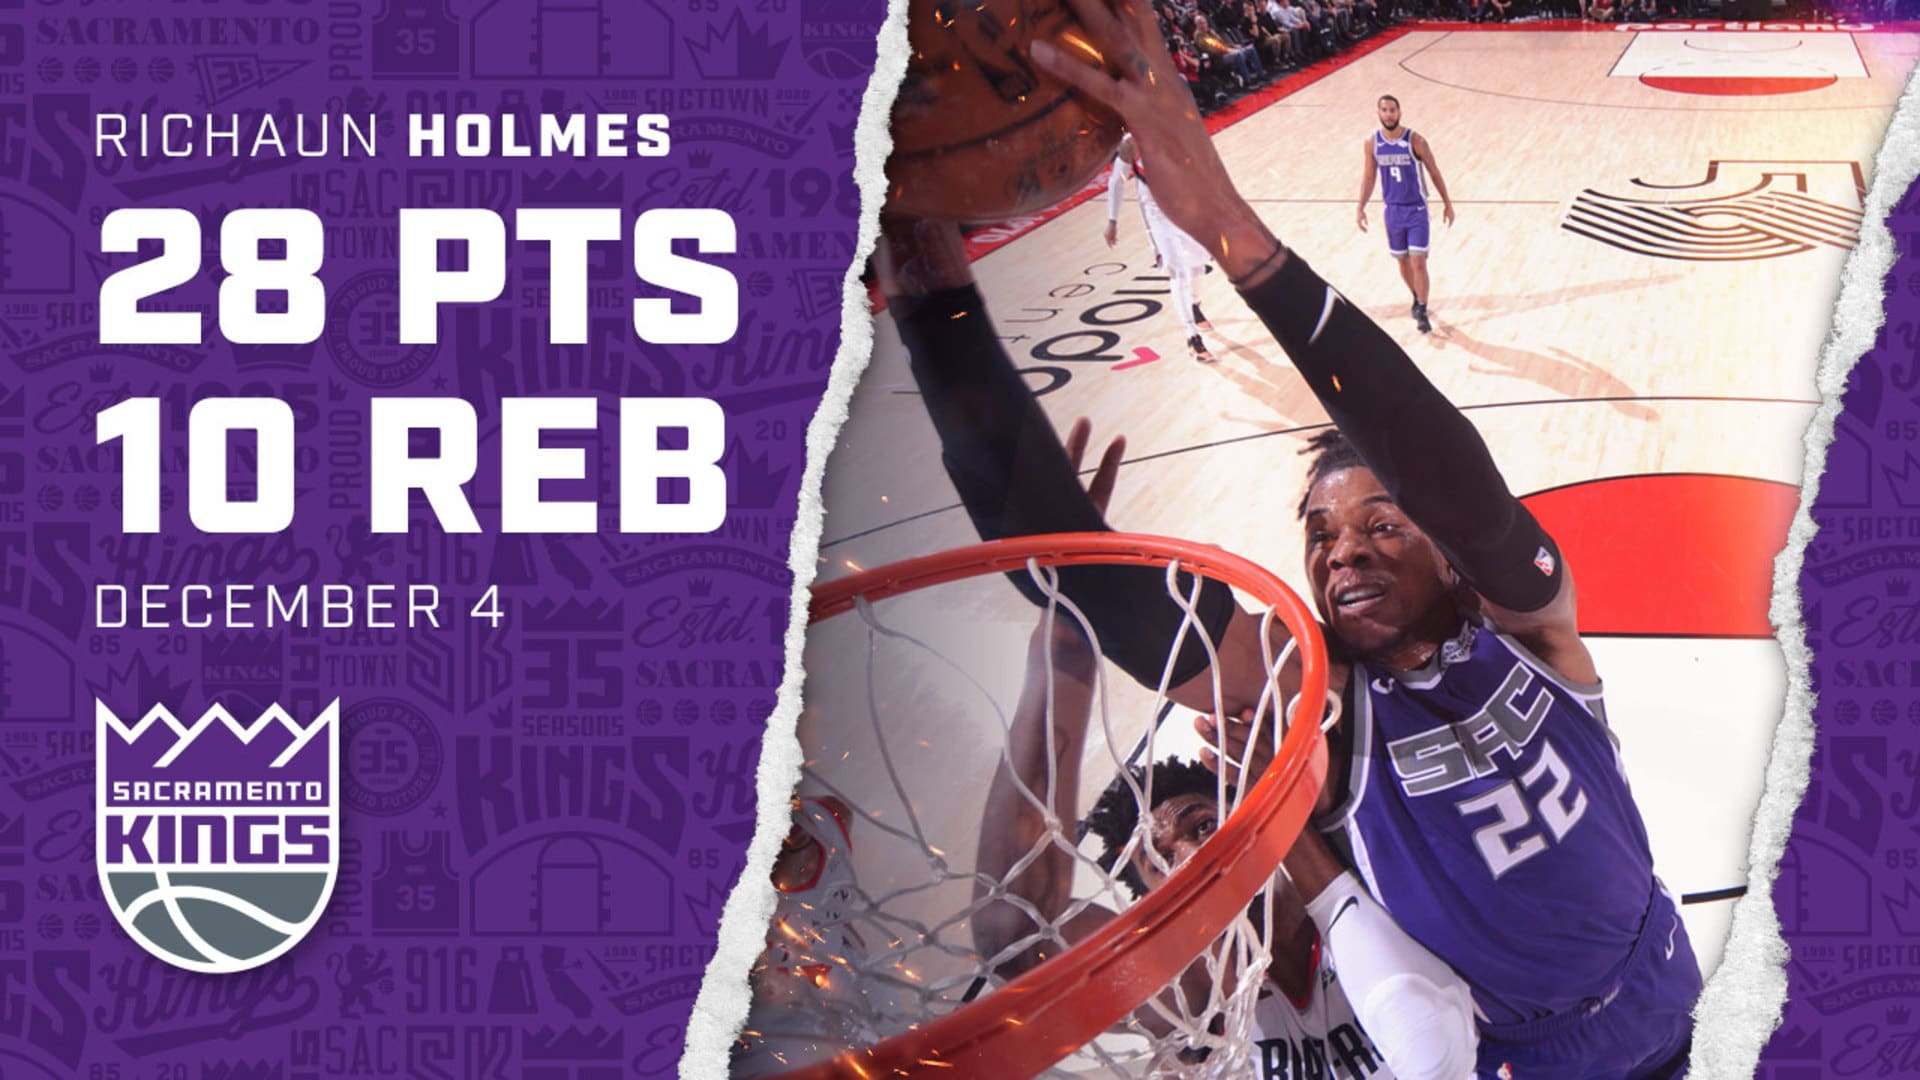 Richaun Holmes sets a NEW CAREER HIGH with 28 PTS in Portland!